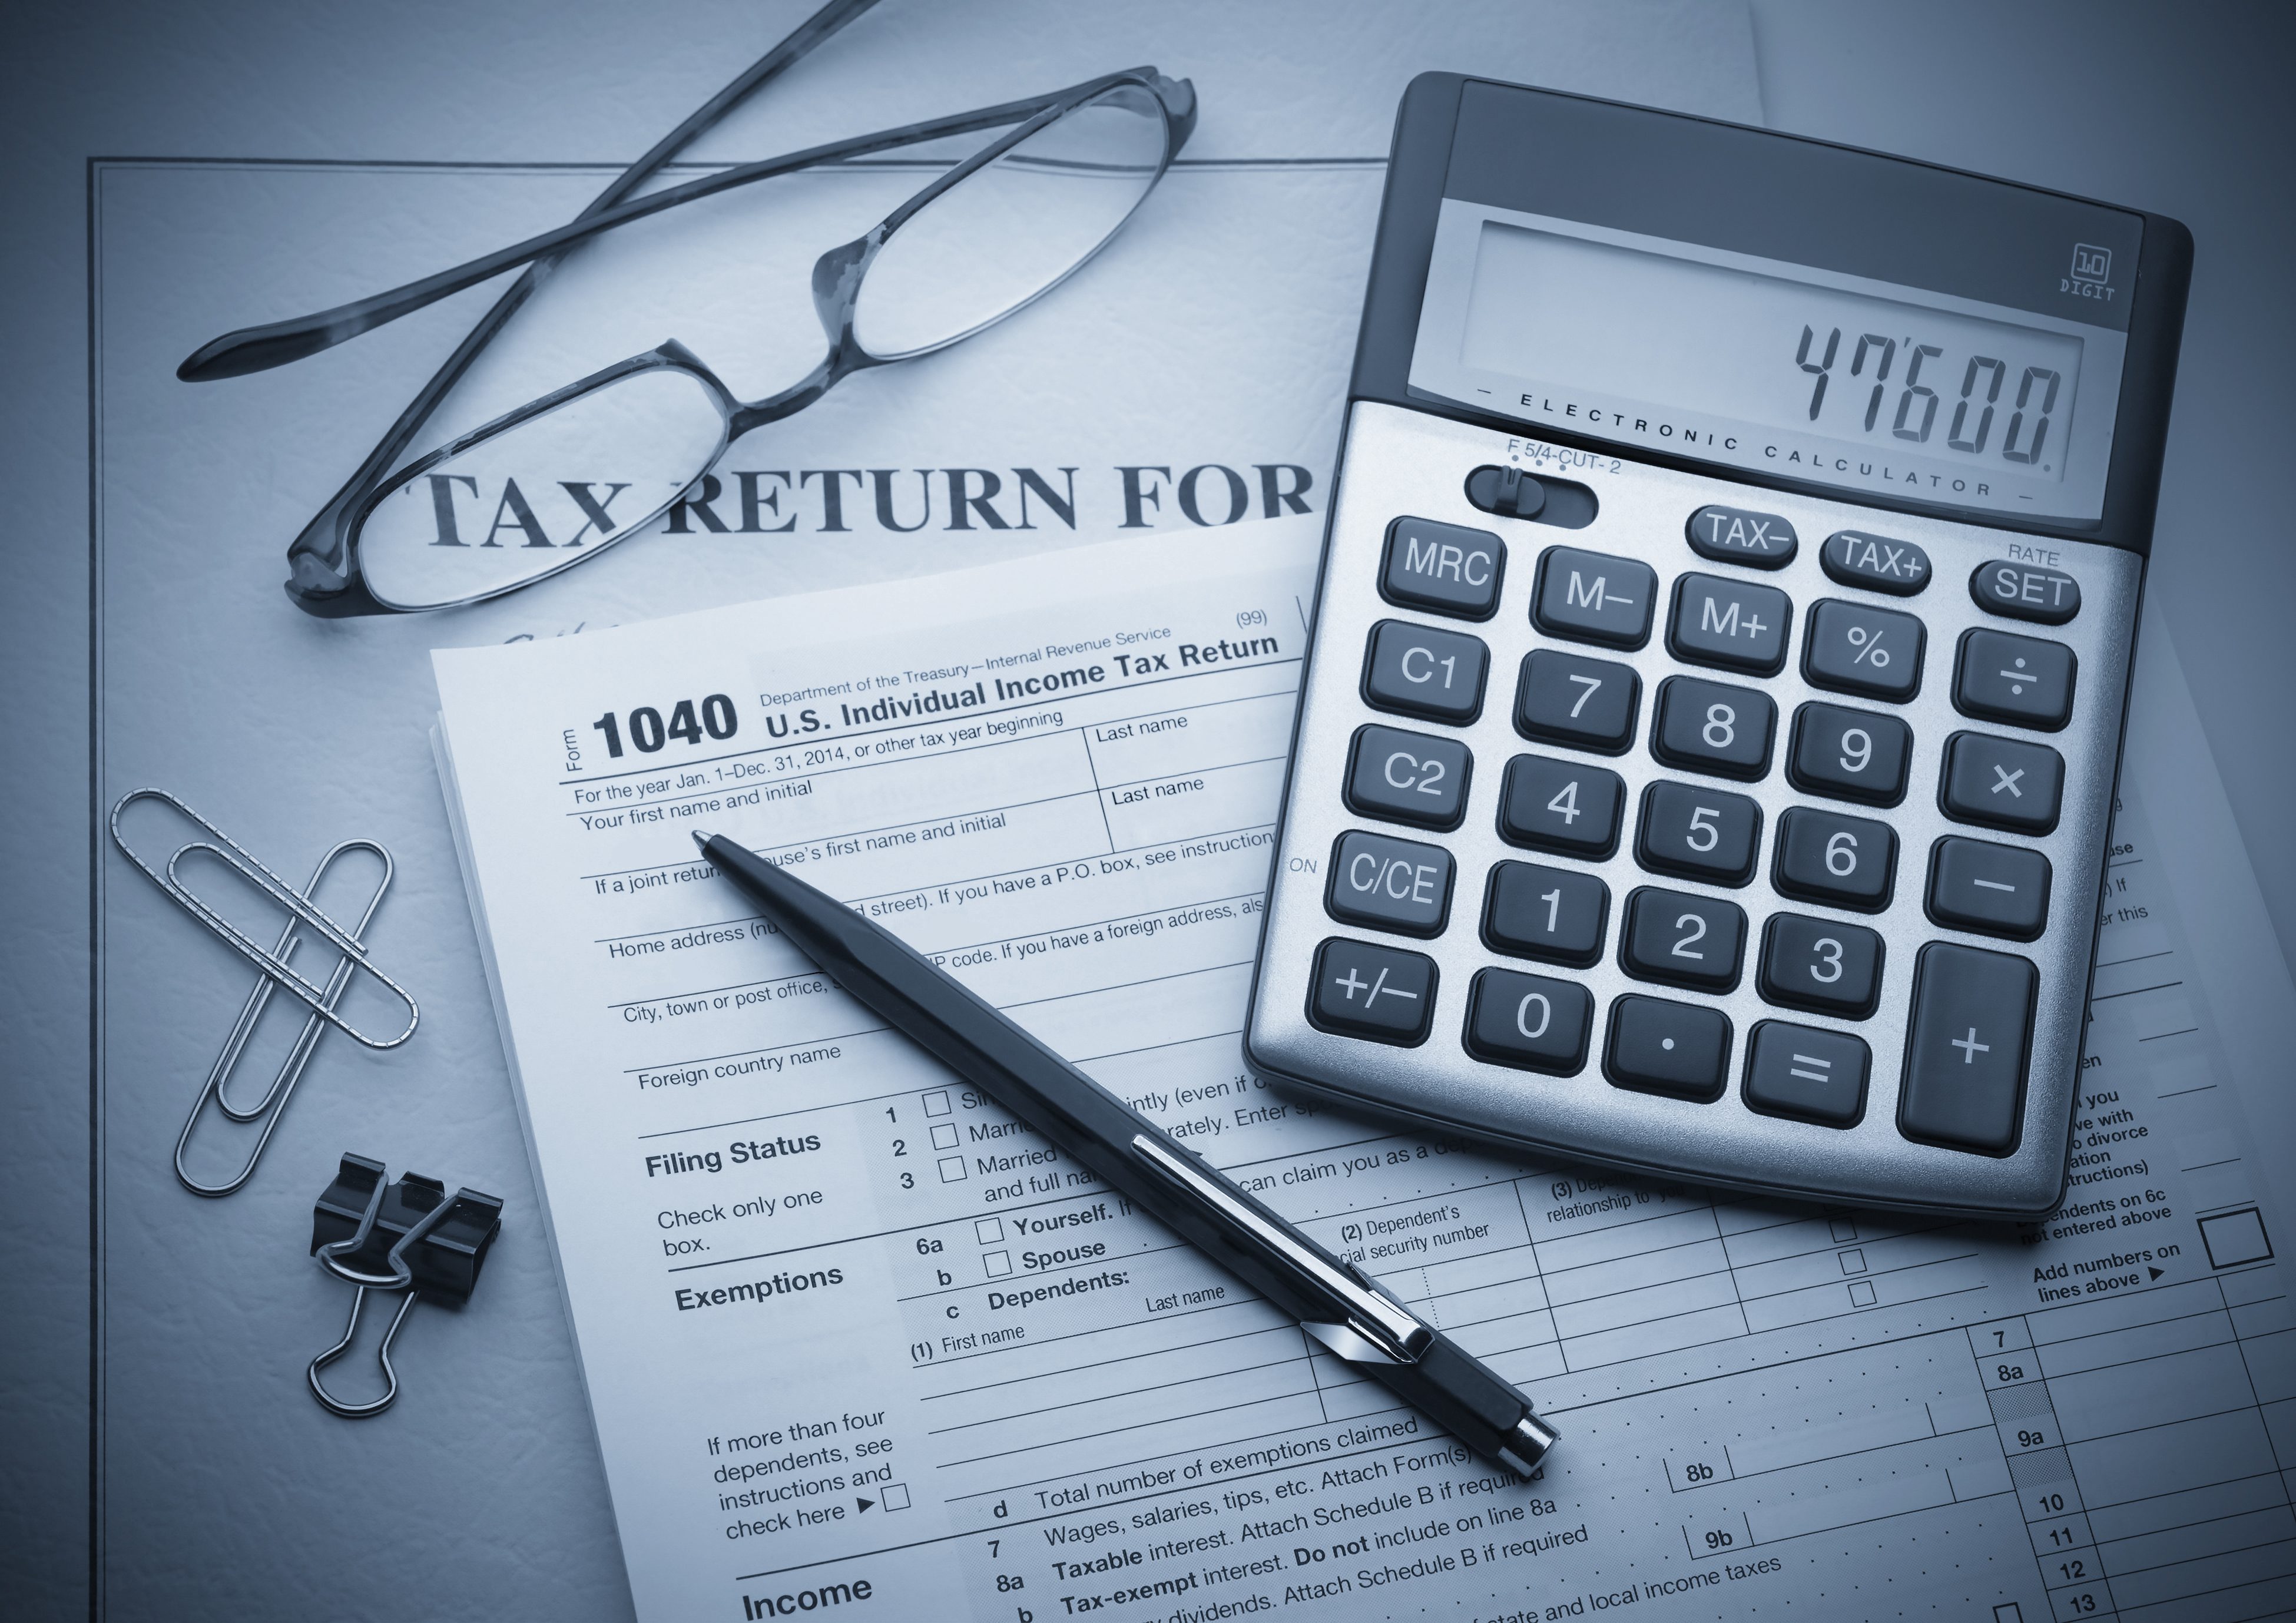 Alabama Department Of Revenue Provides Extra Security For Tax Returns